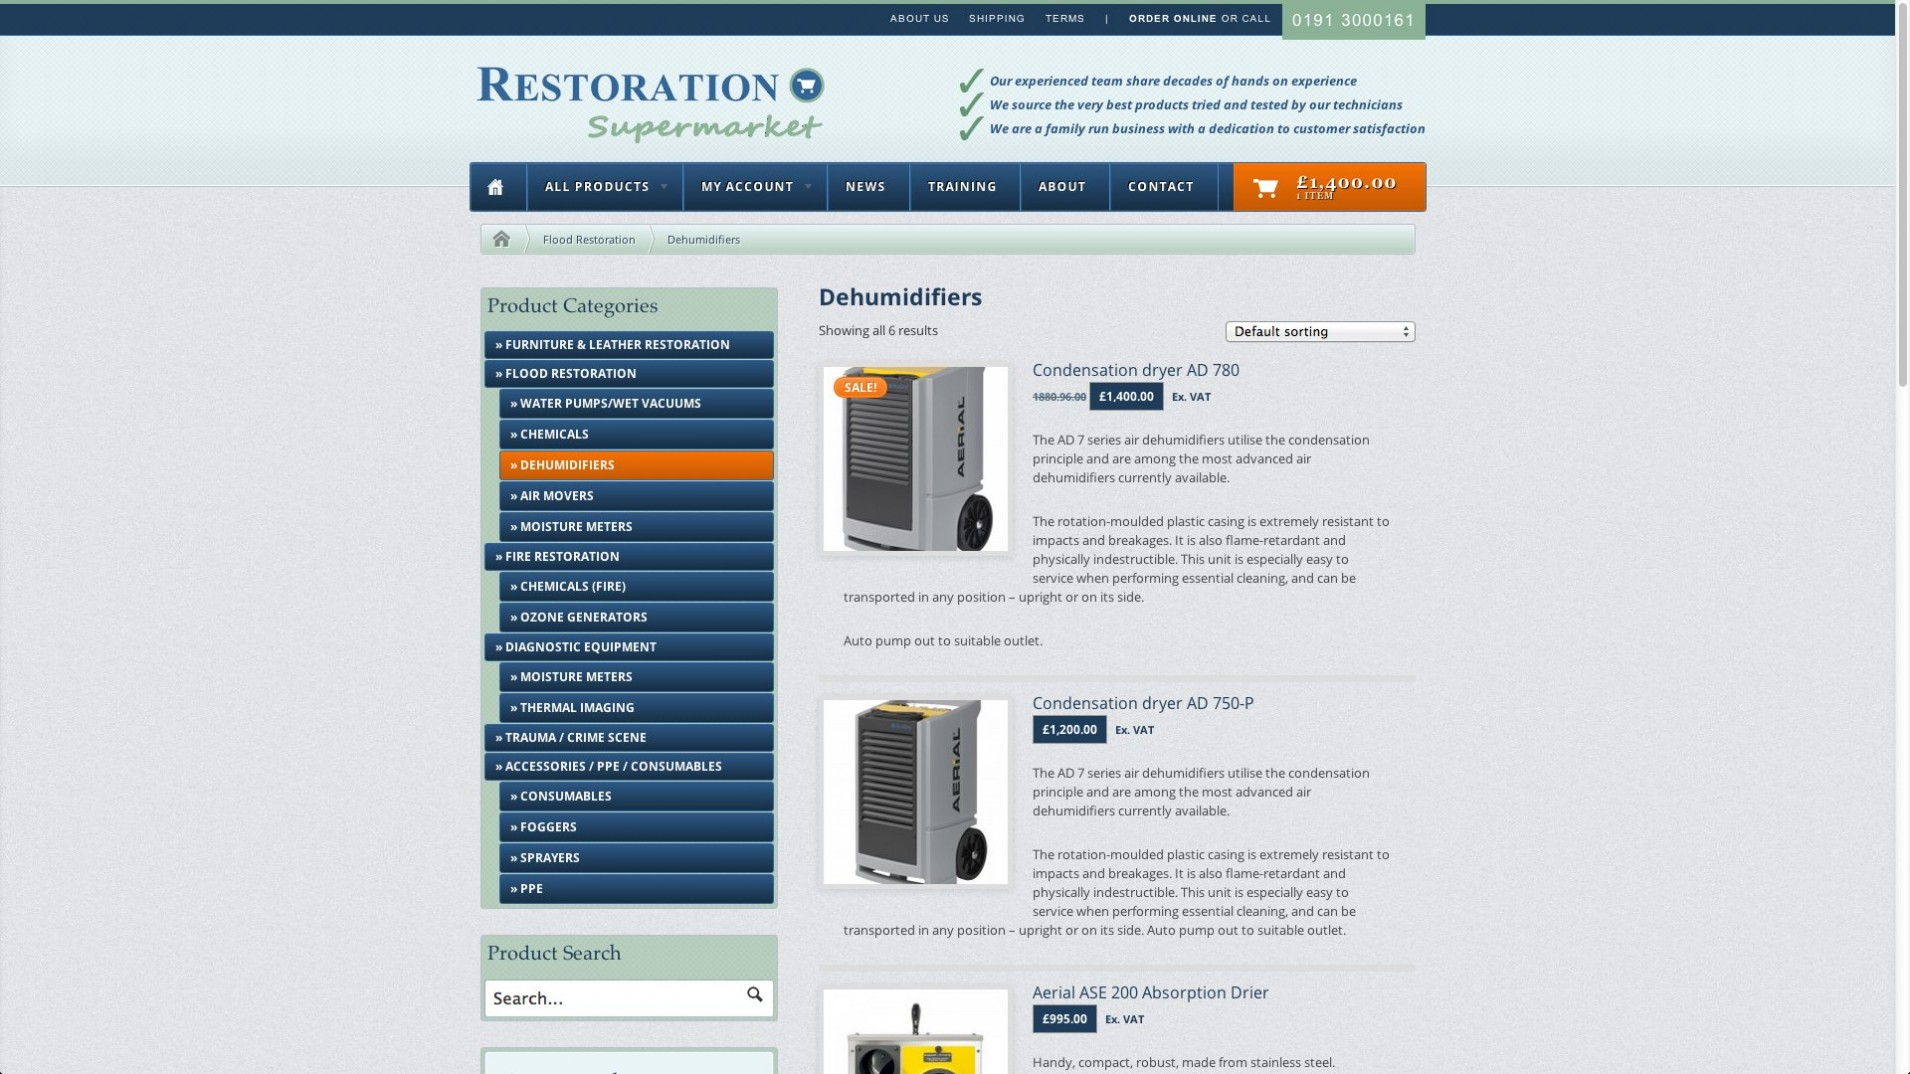 Screen Shot 2013 12 23 at 16.34.13 1 - E-commerce webdesign for cleaning equipment supplier